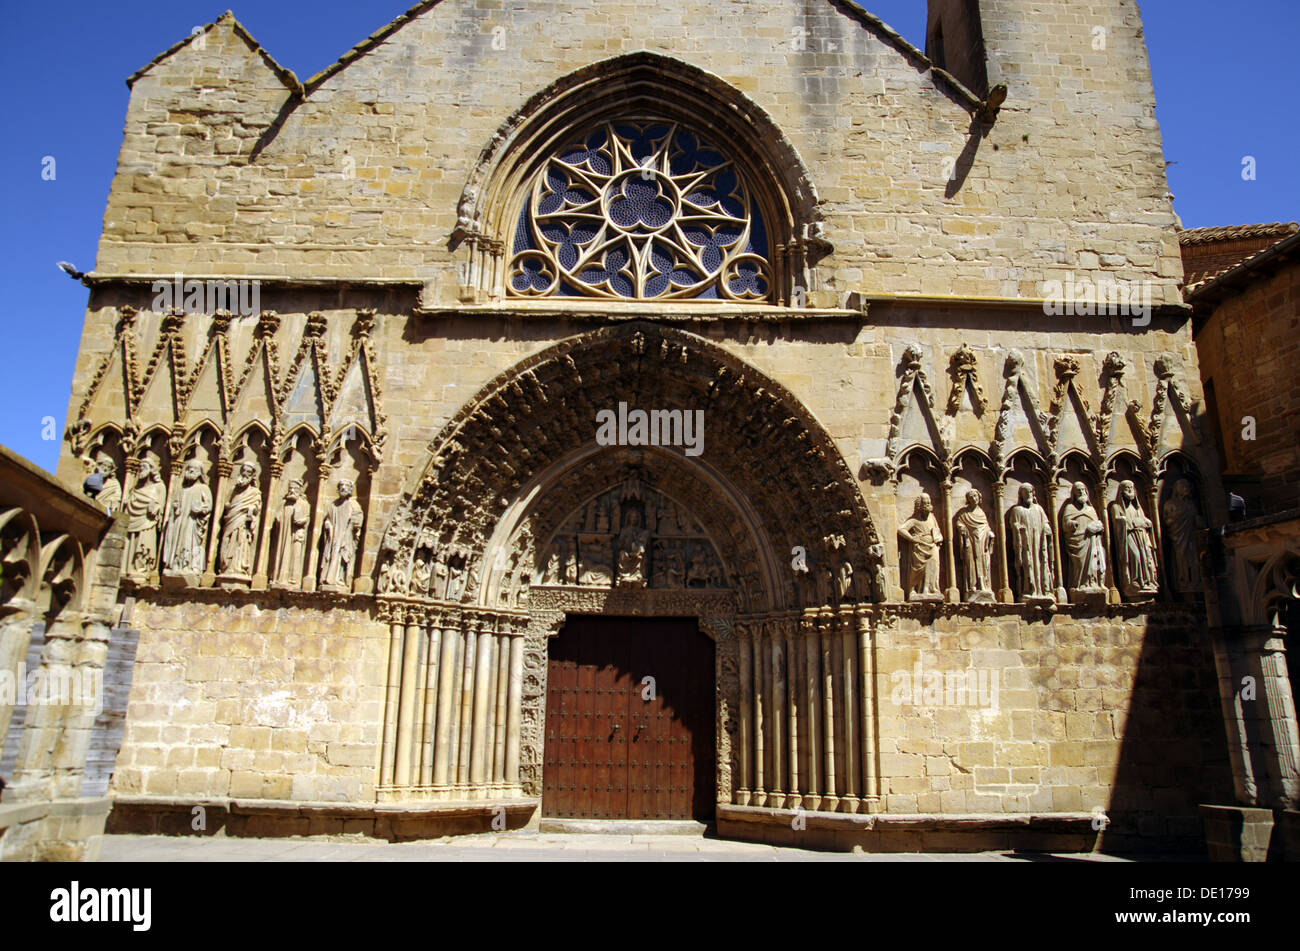 Facade of the church of St. Peter in Olite (Navarra, Spain) - Stock Image